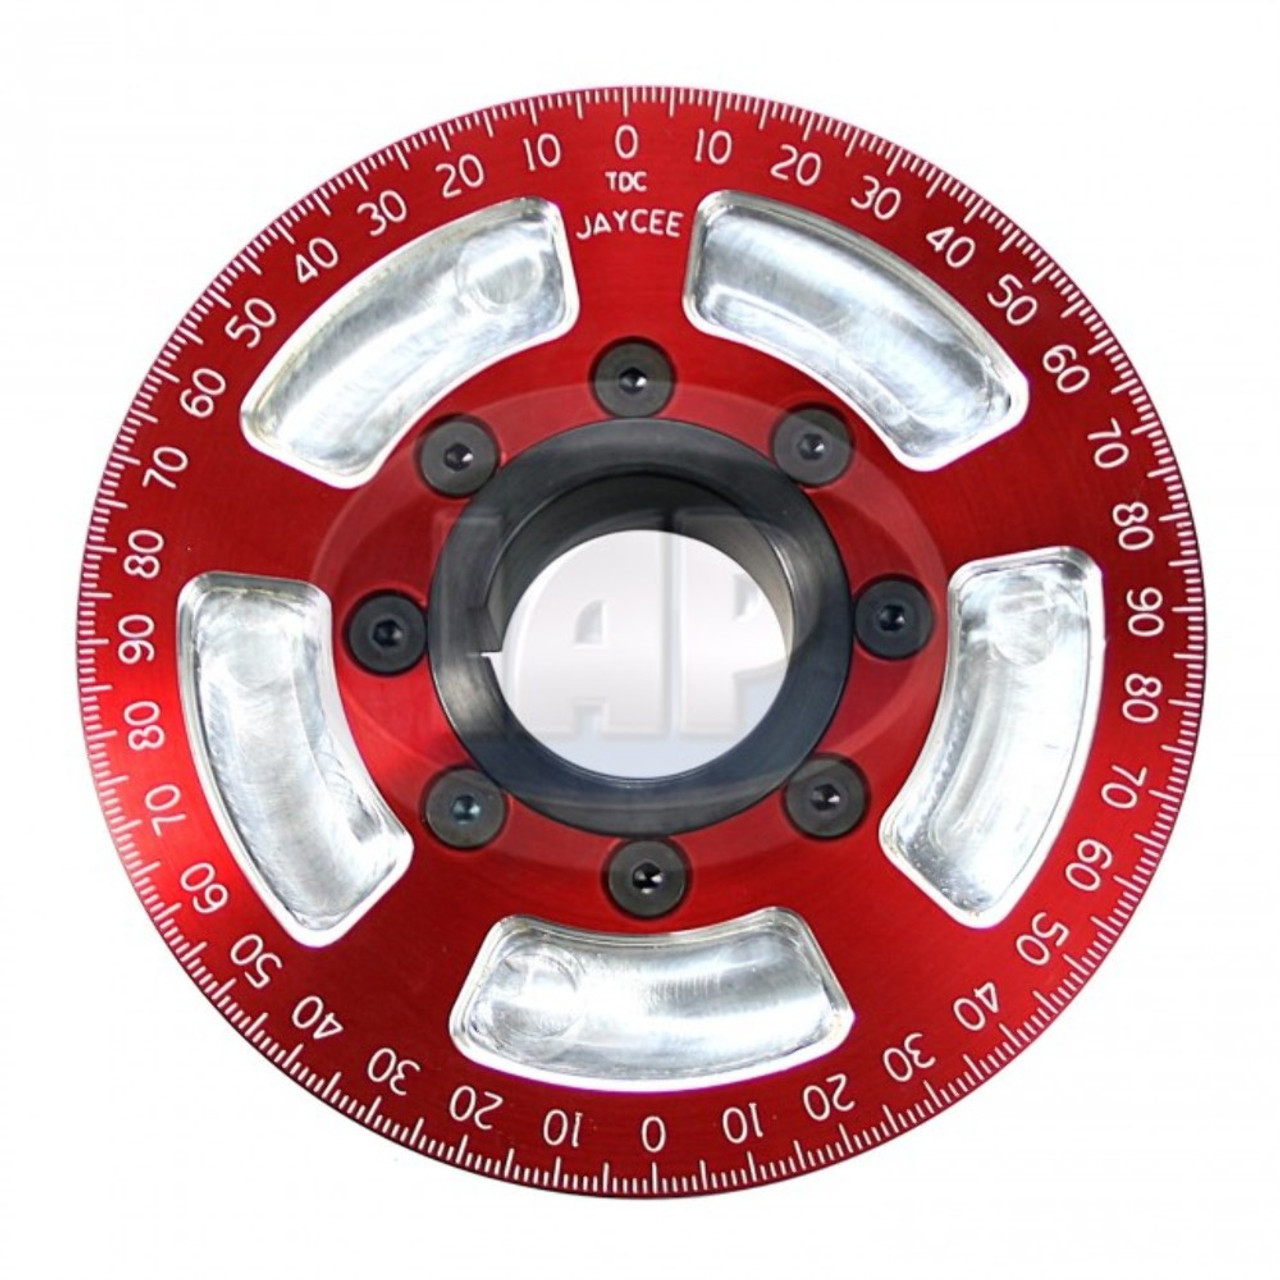 "5-1/4"" Street Power Crankshaft Power Pulley, Red For Air-Cooled VW"